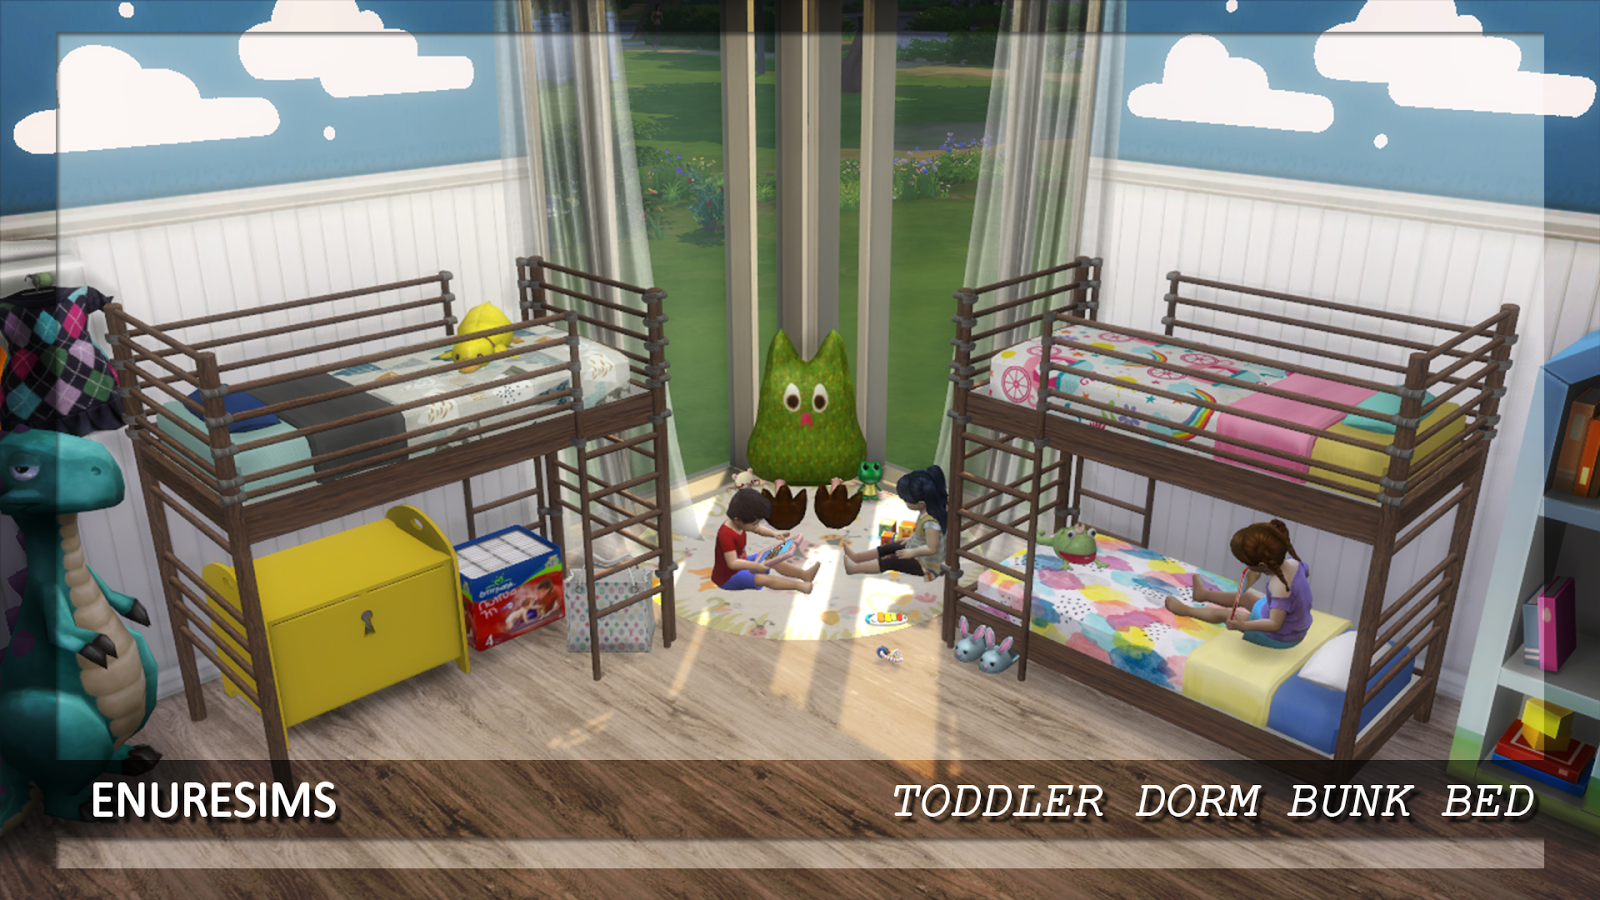 ts3 to ts4 Dorm Bunk Bed for Toddlers (two versions